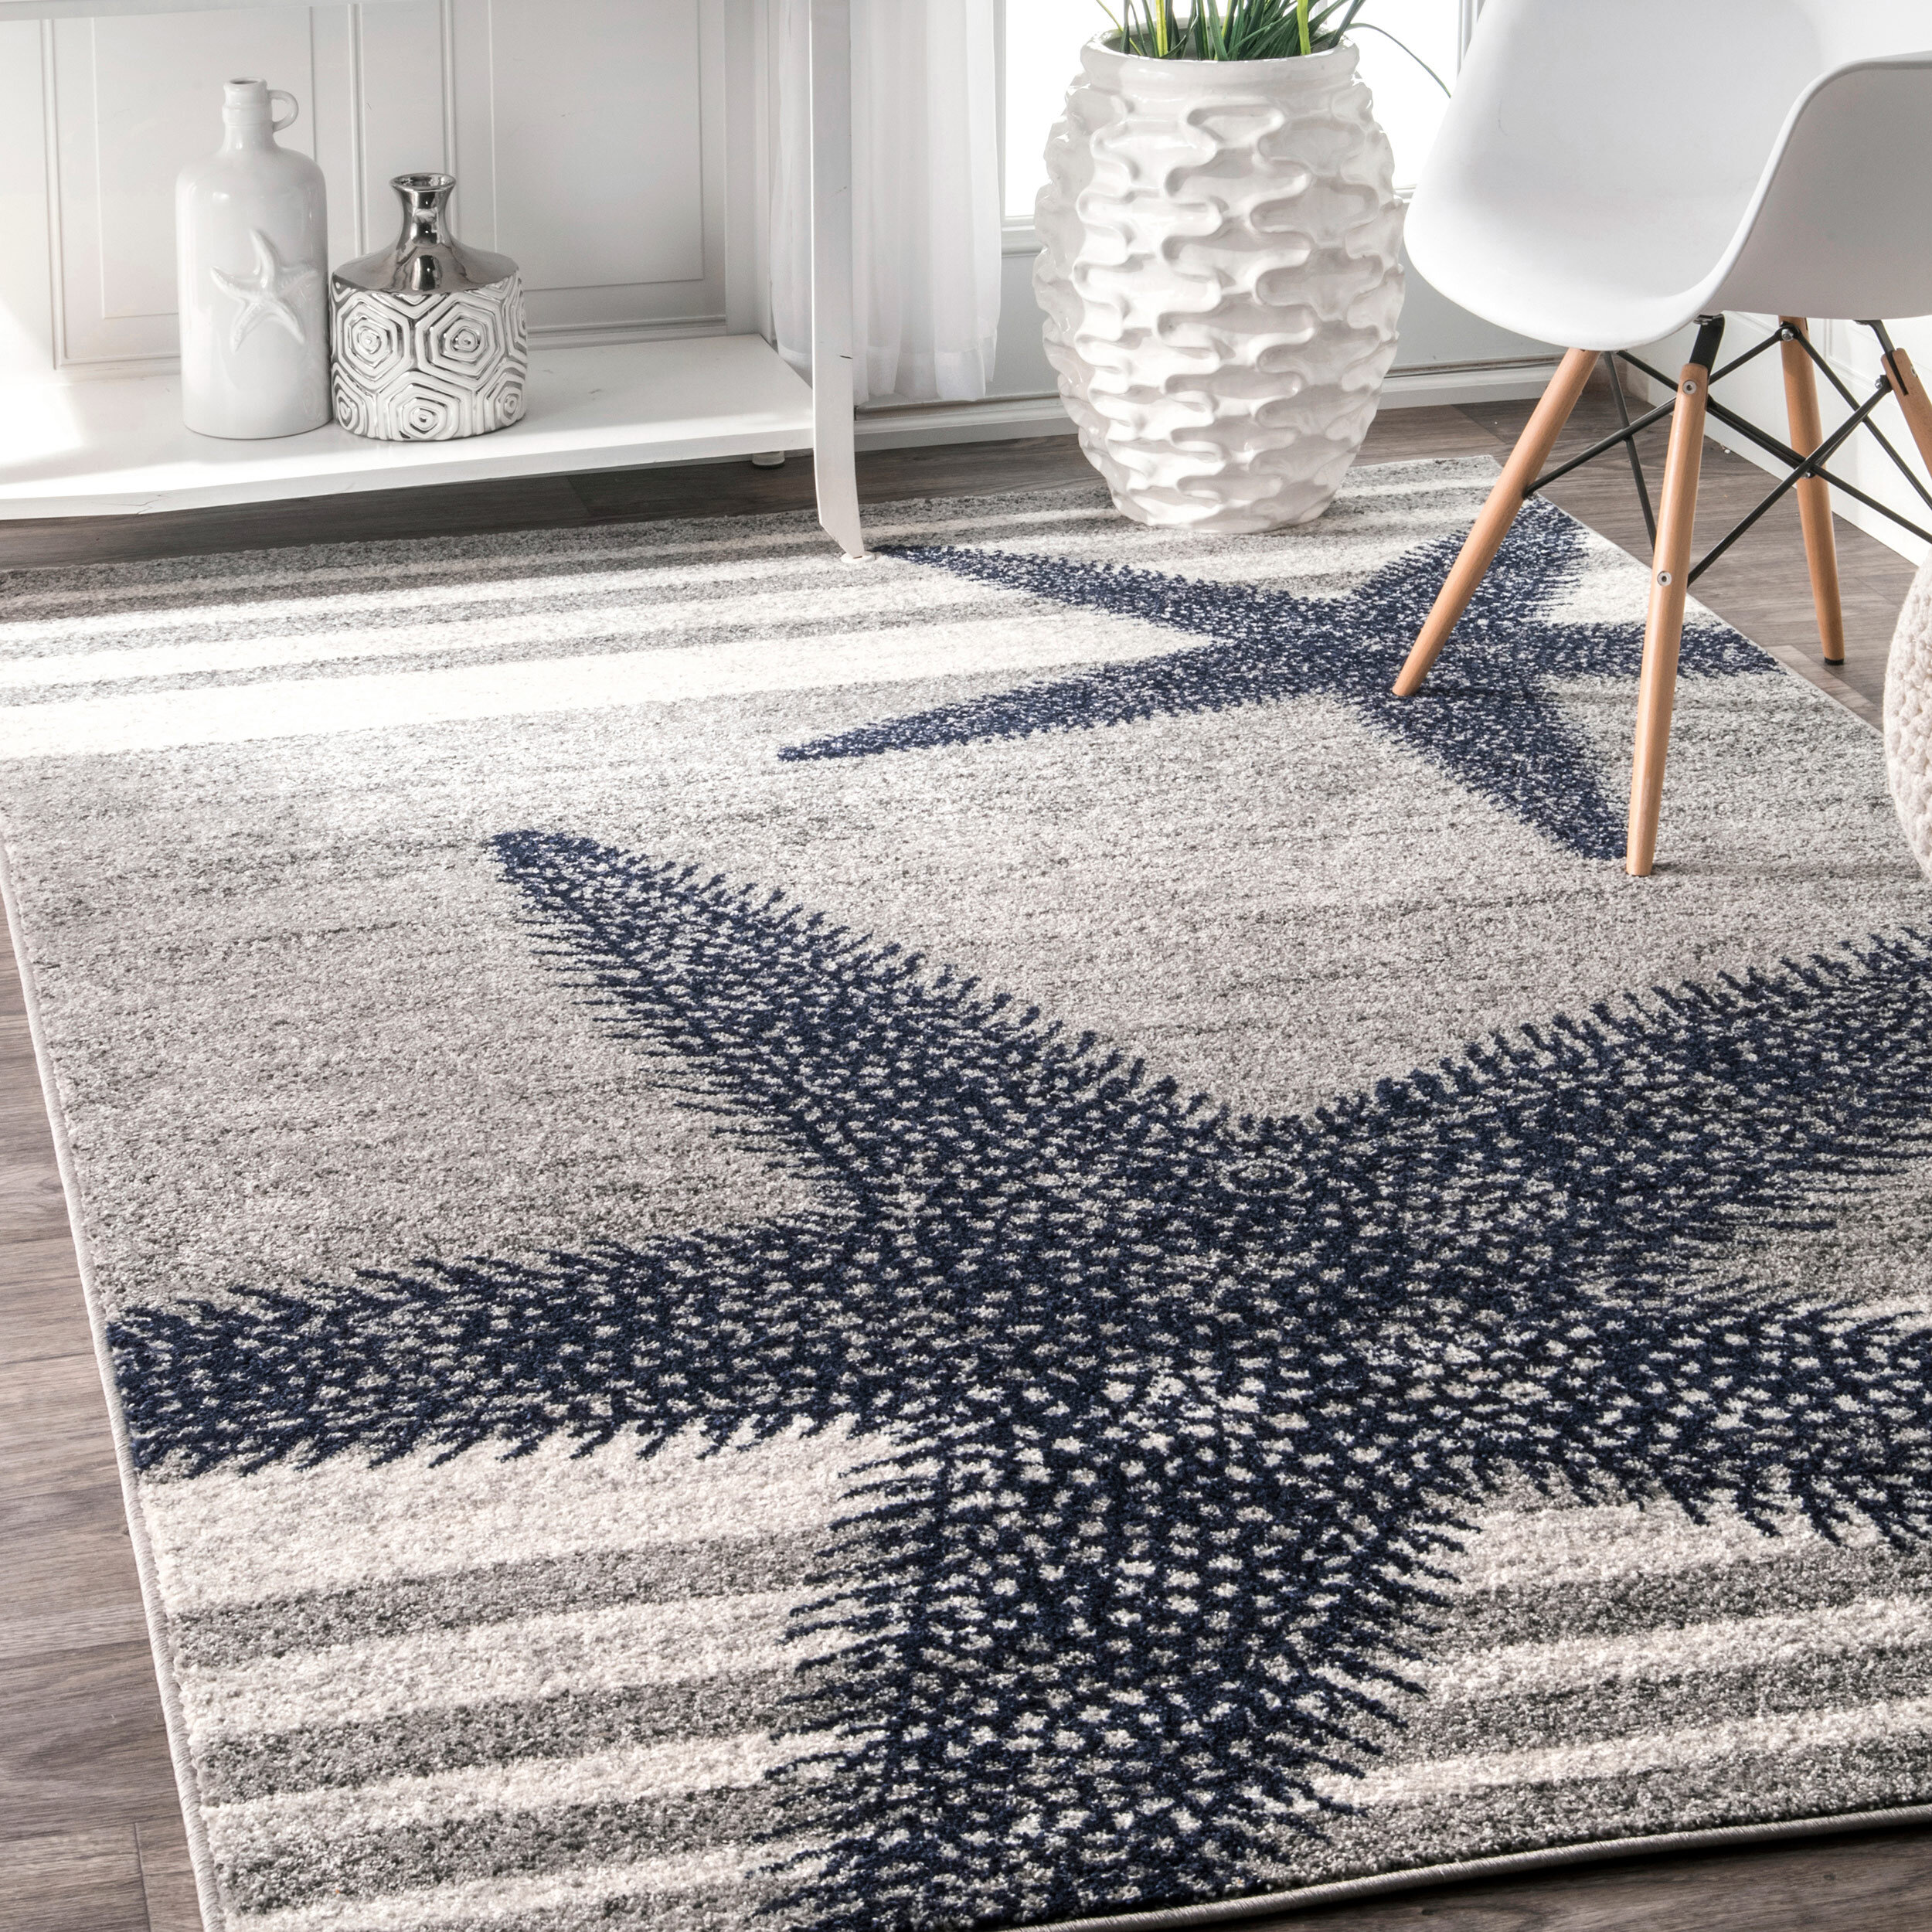 Nautical Round Area Rugs You Ll Love In 2021 Wayfair